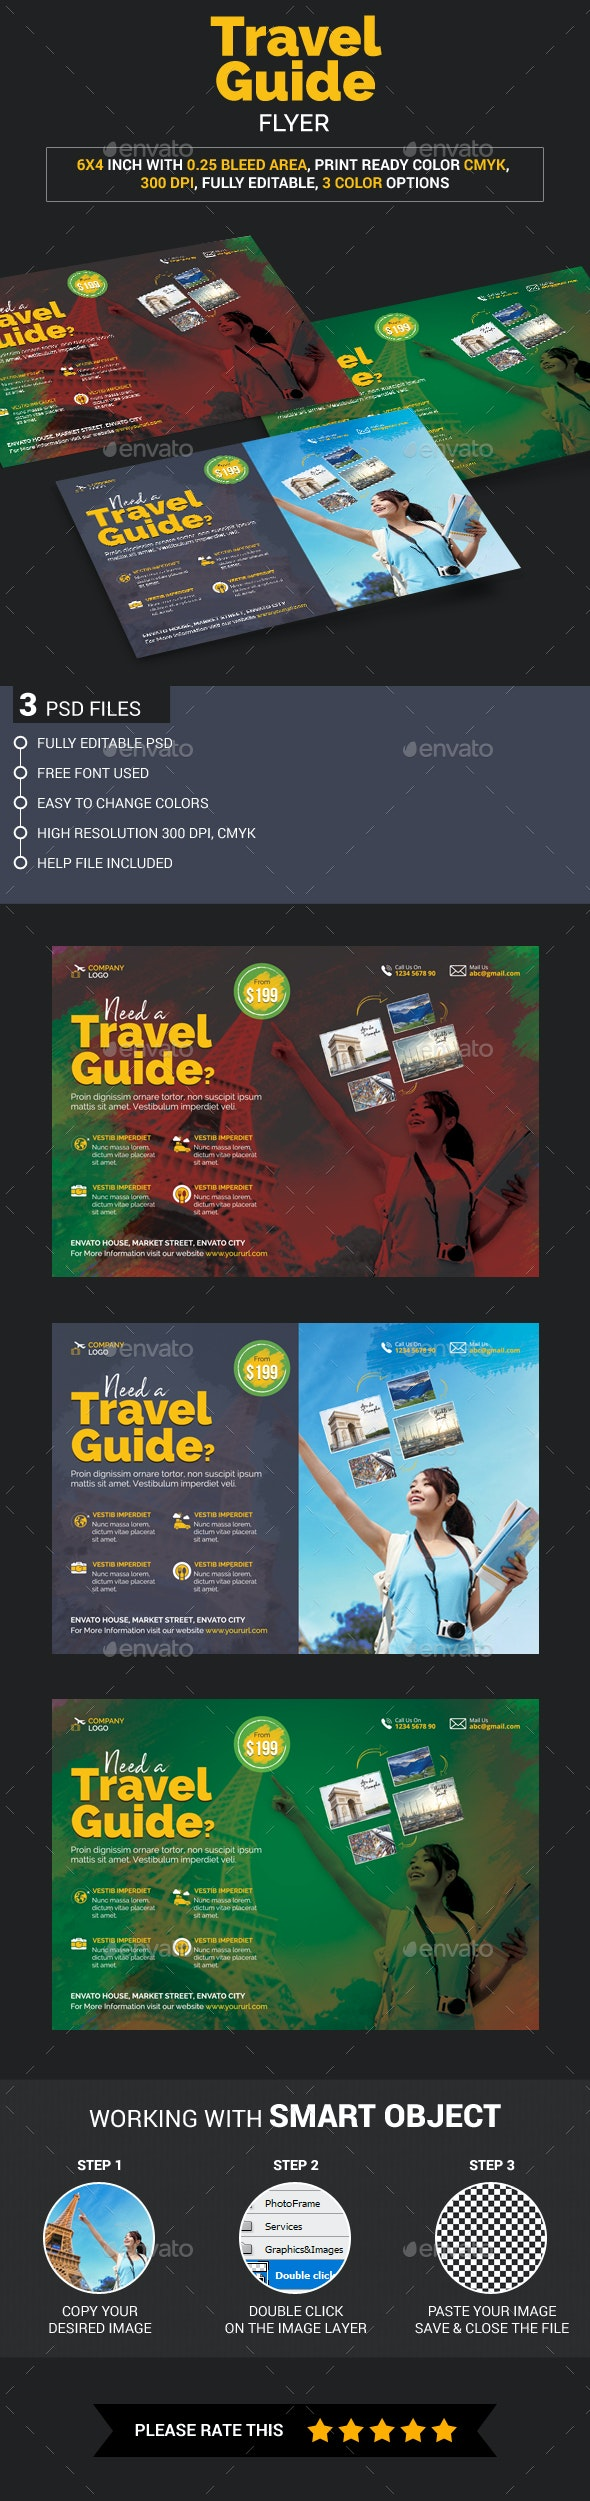 Travel Guide Flyer - Holidays Events